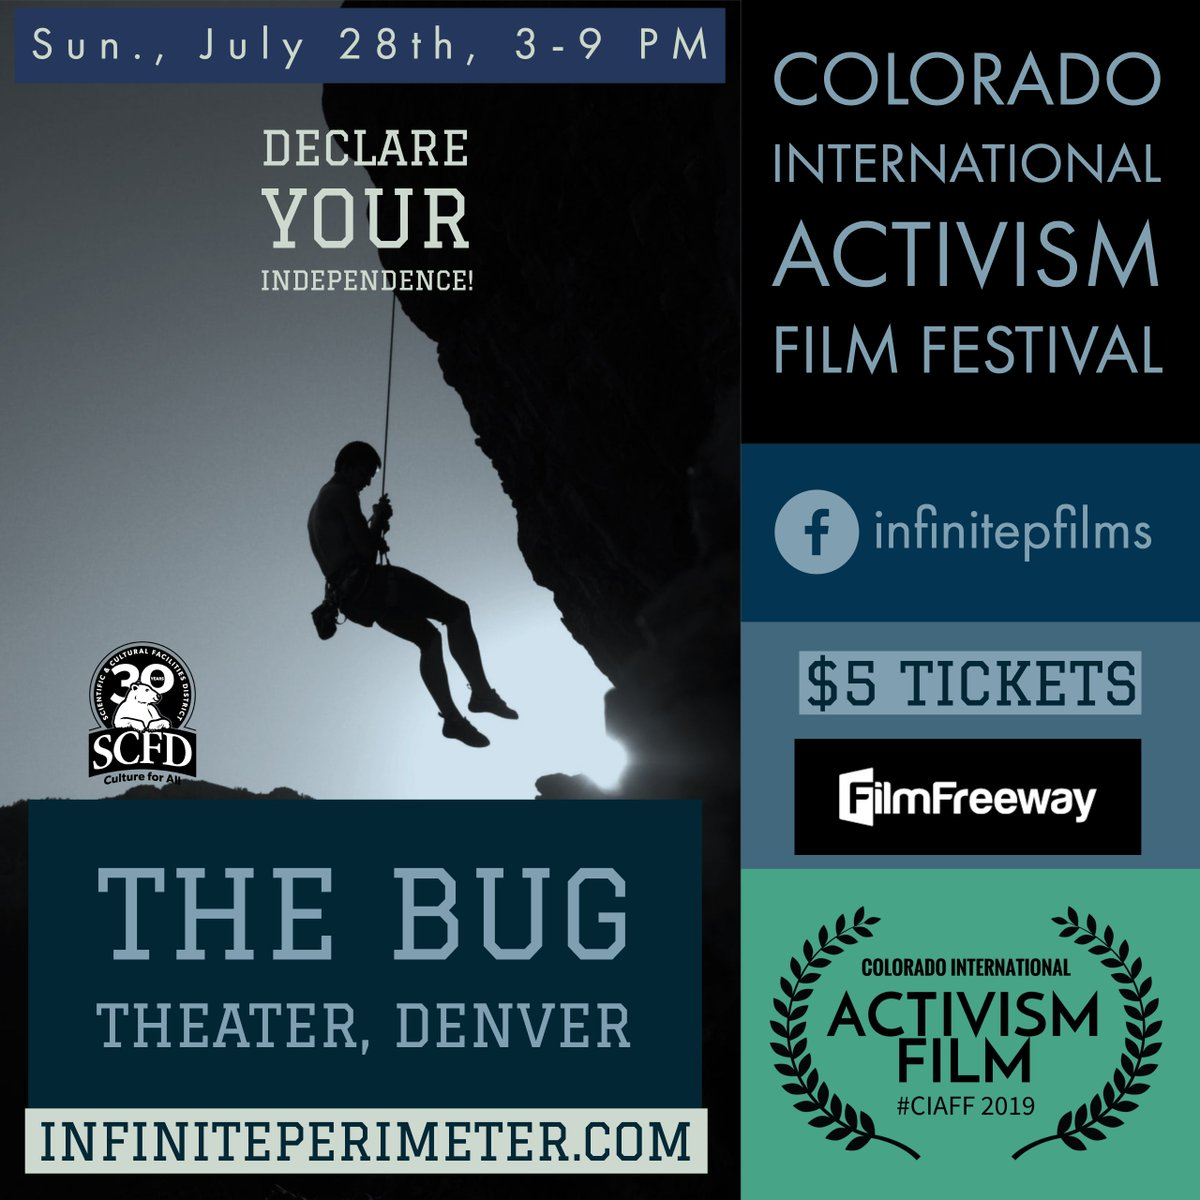 We want you to declare your independence! C'mon out to the Colorado Intl. Activism Film Festival #CIAFF2019 we've got some great #film #musicvideo #screenplay #activism Get tickets for $5 at FilmFreeway #filmfreeay #musicians4freedom #infiniteperimeterfilms #infinitepfilms